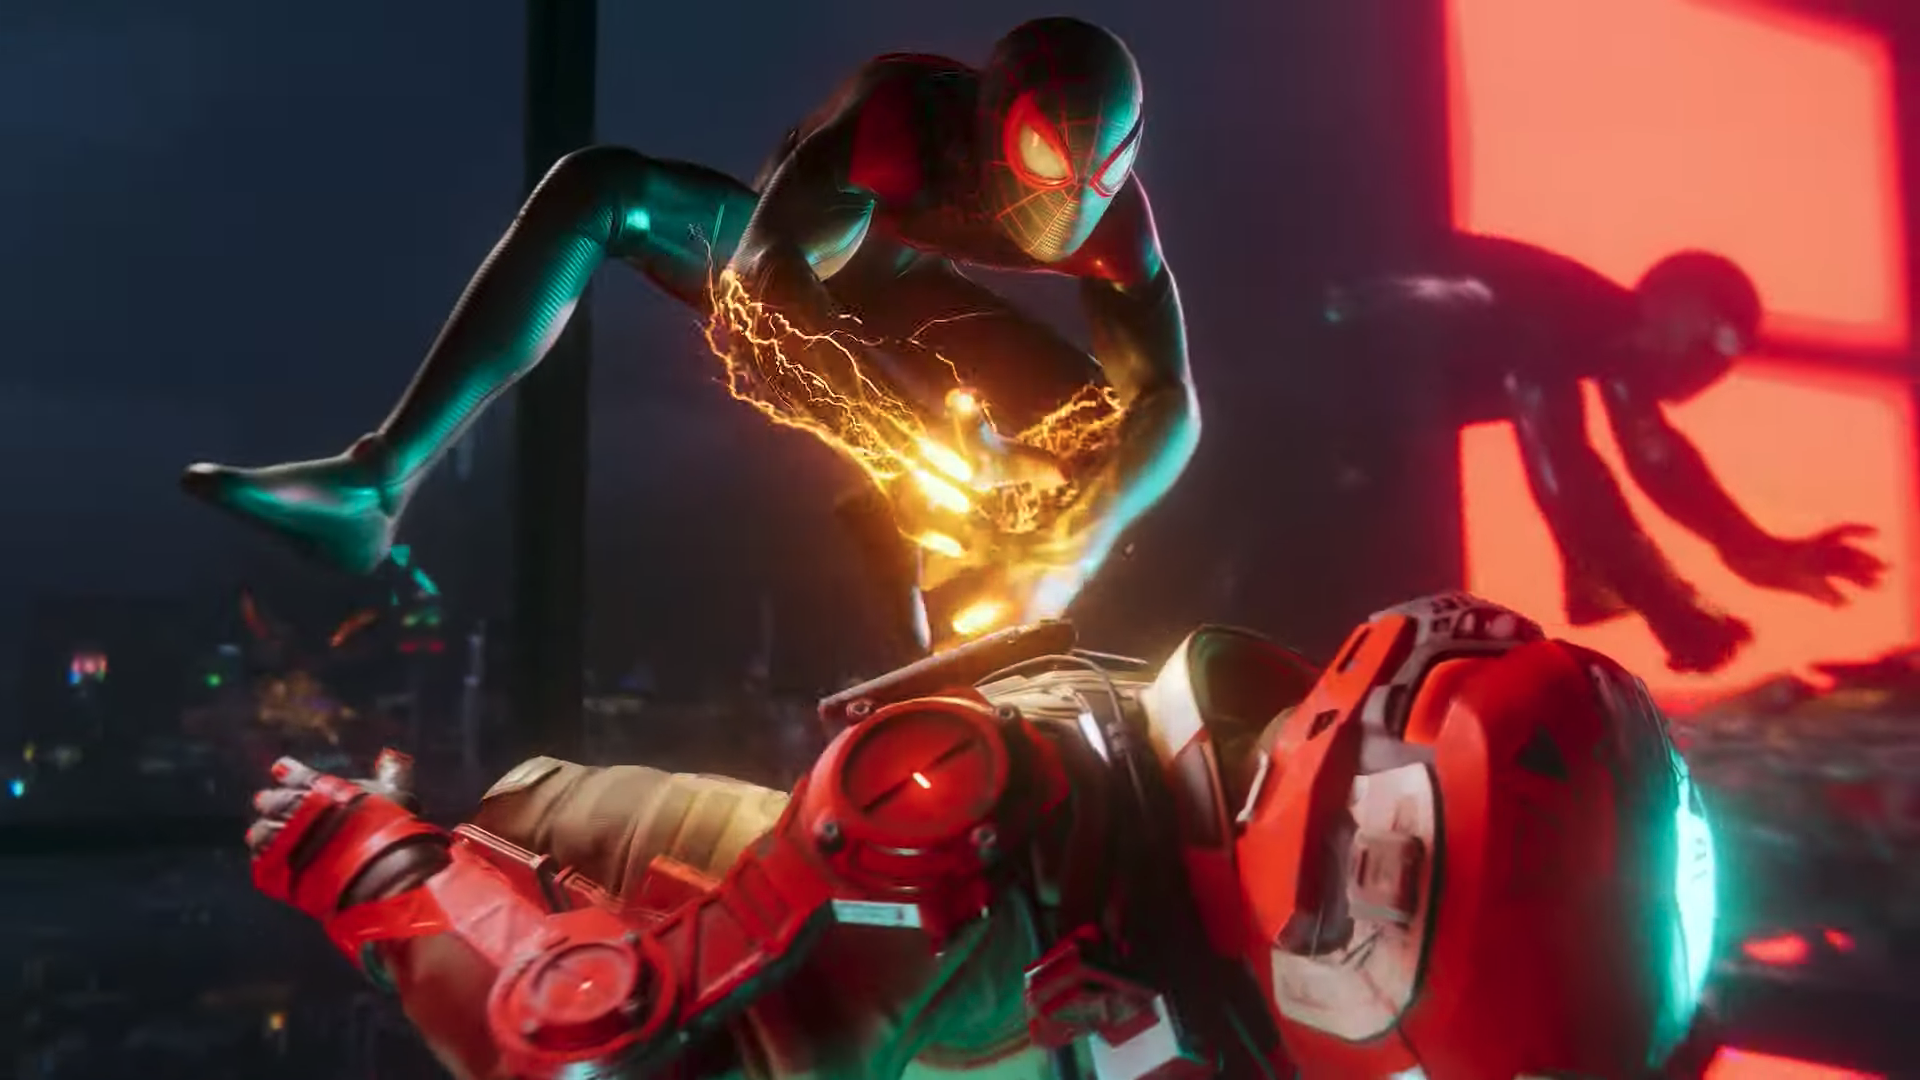 S<em>pider-Man: Miles Morales</em> is a major PS5 launch title, though it's coming to the PS4 as well.